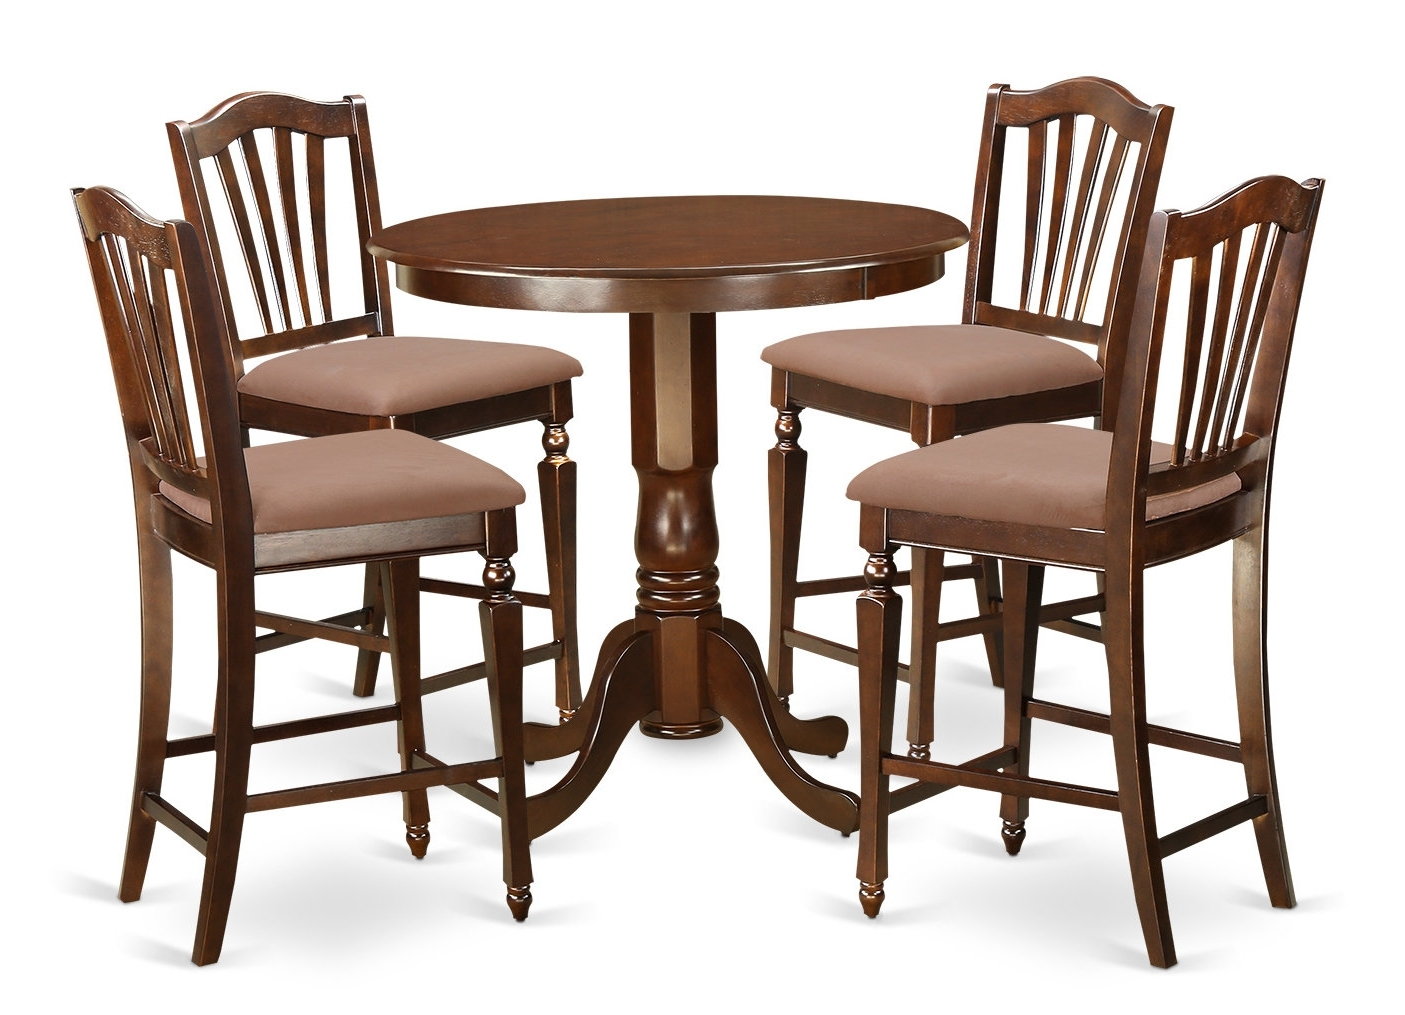 Newest Jaxon Grey 6 Piece Rectangle Extension Dining Sets With Bench & Wood Chairs regarding East West Jackson 5 Piece Counter Height Pub Table Set